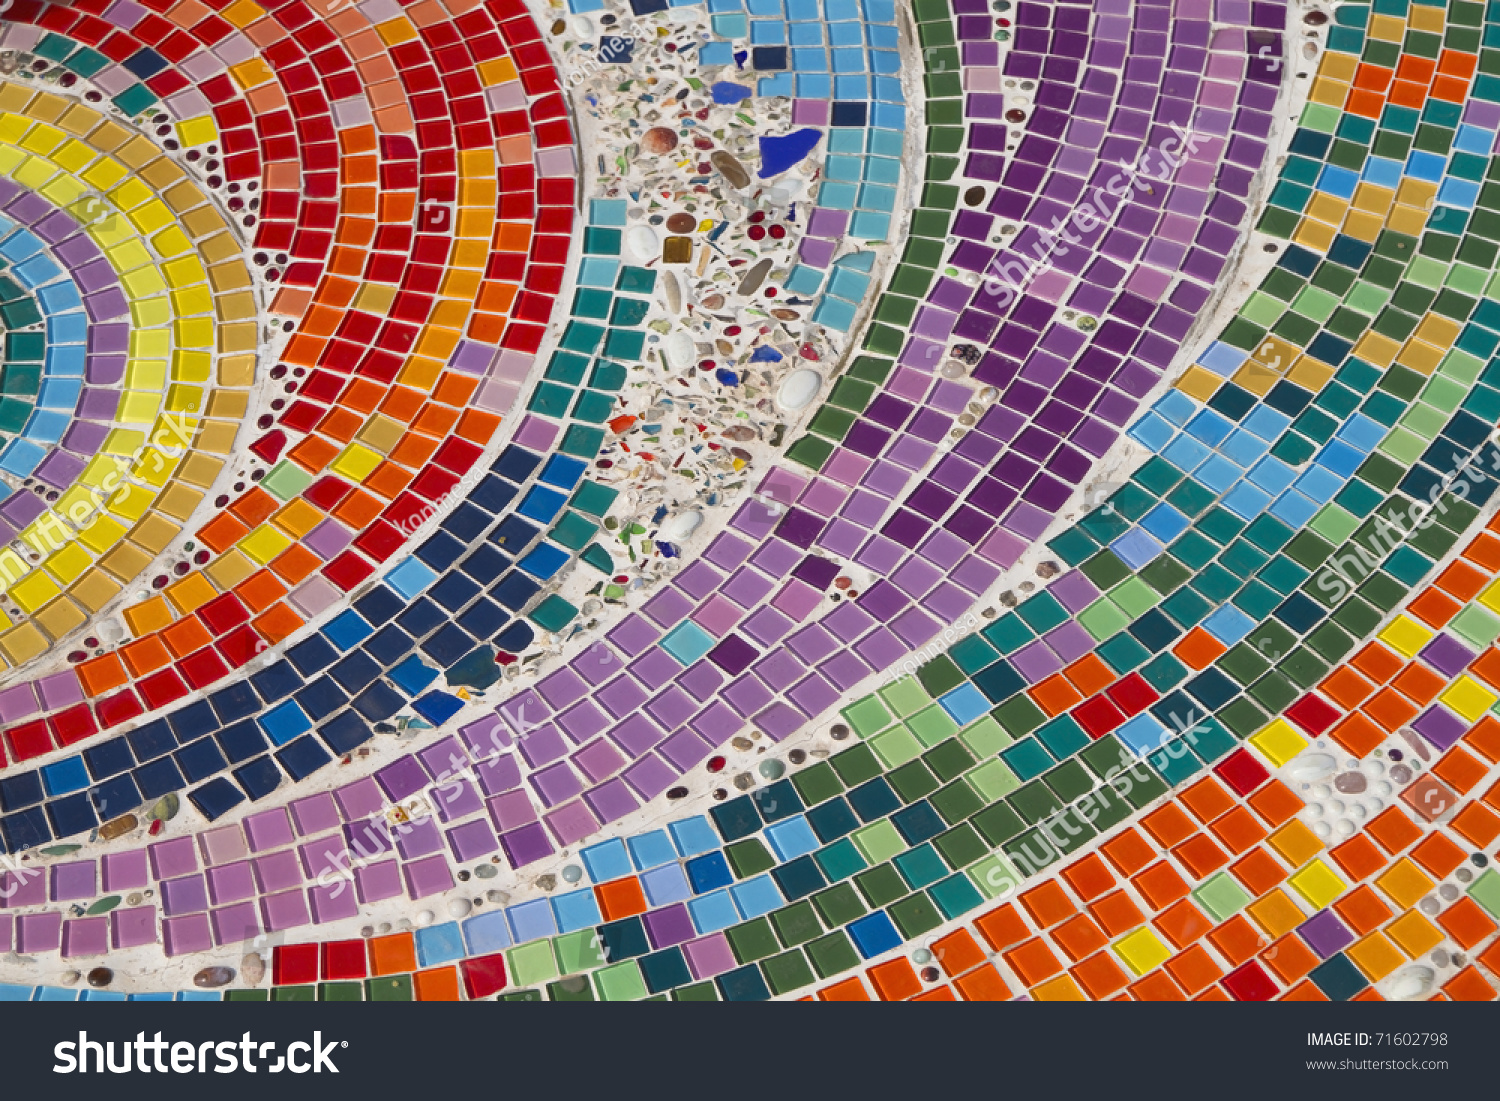 Colorful Mosaic Background Stock Photo 71602798 Shutterstock